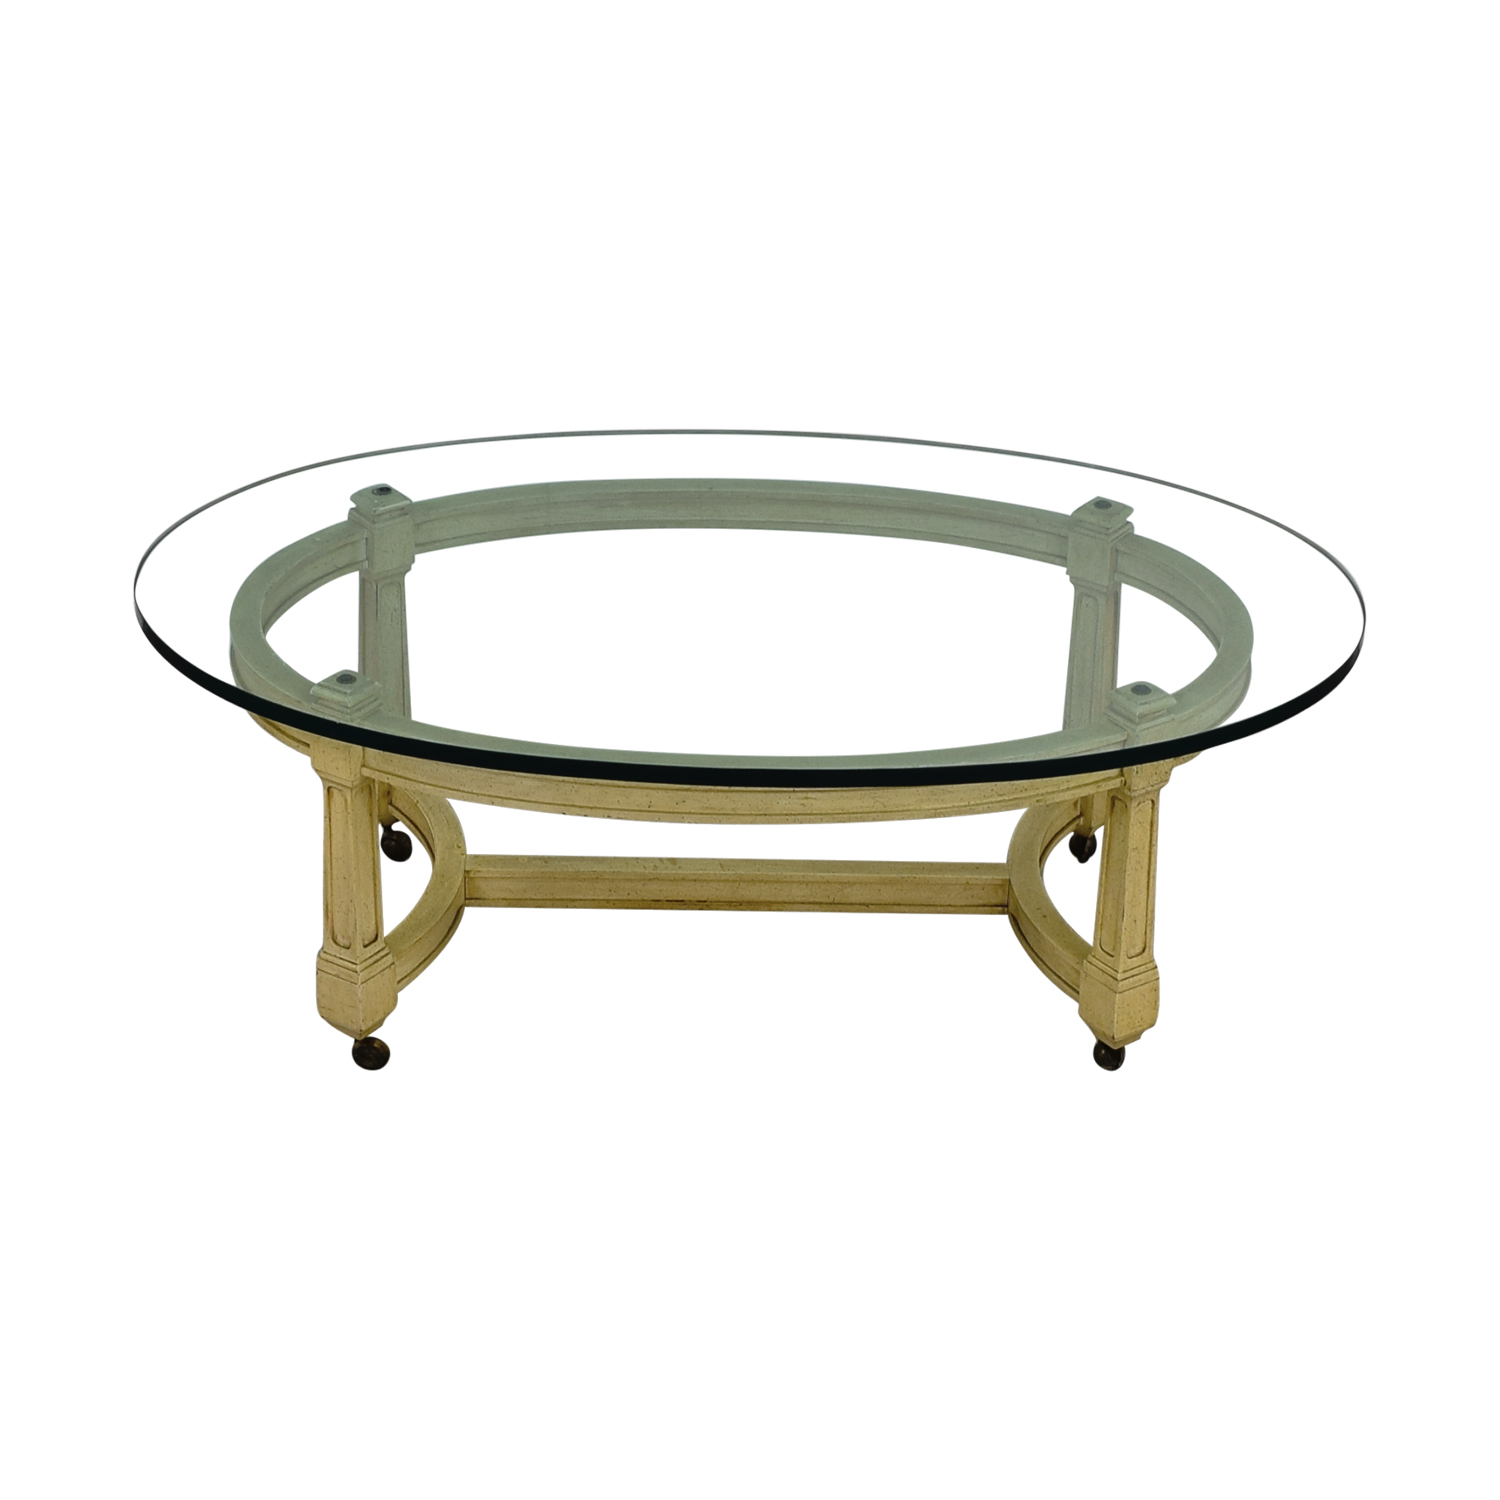 61 Off Off White And Glass Oval Coffee Table On Castors Tables